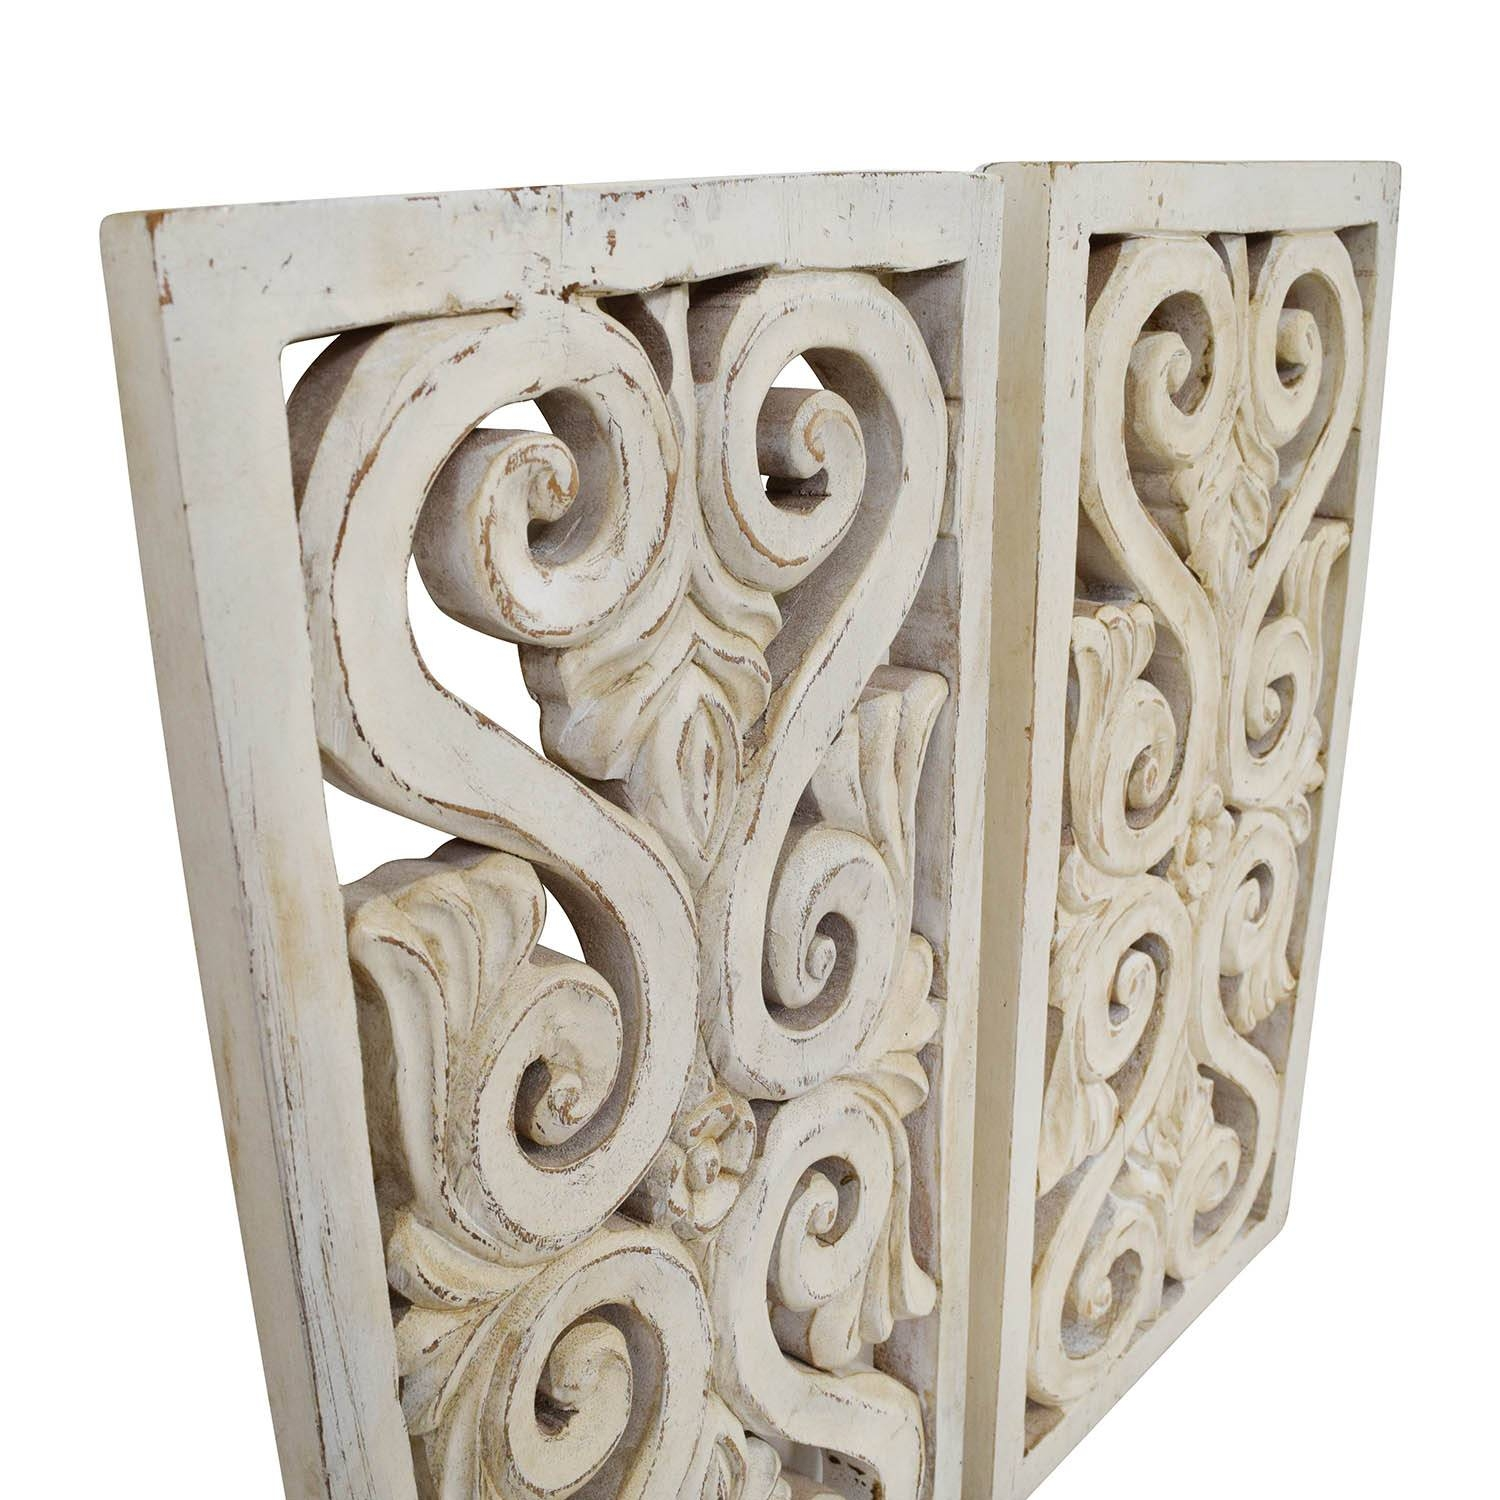 71% Off – Distressed White Wood Wall Sculpture / Decor With Regard To Best And Newest White Wooden Wall Art (View 13 of 20)